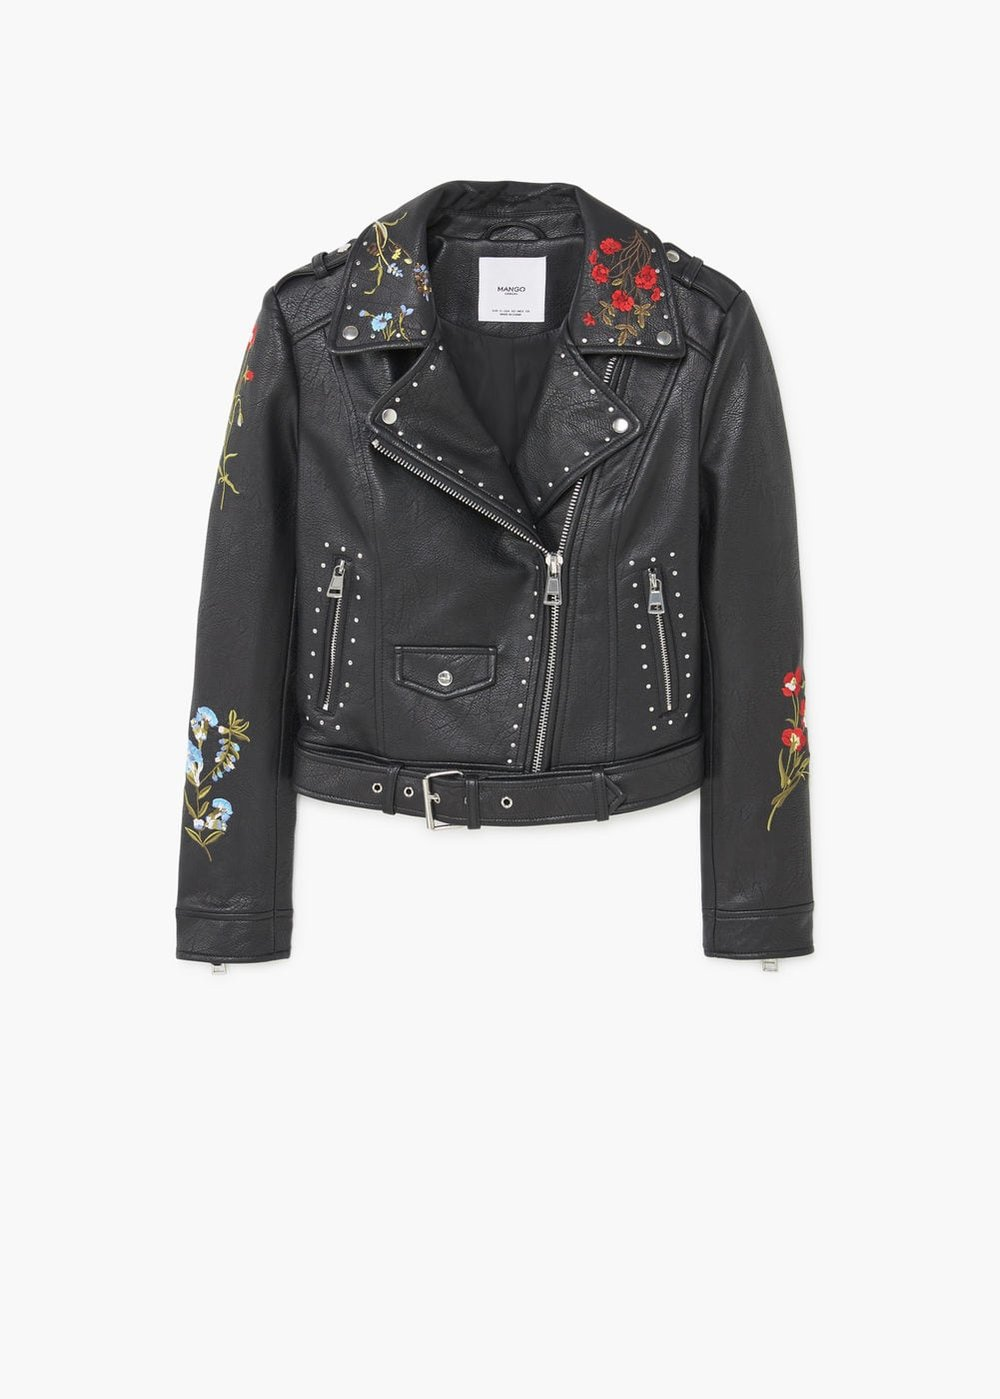 MAngo embroidered stud jacket $99.99